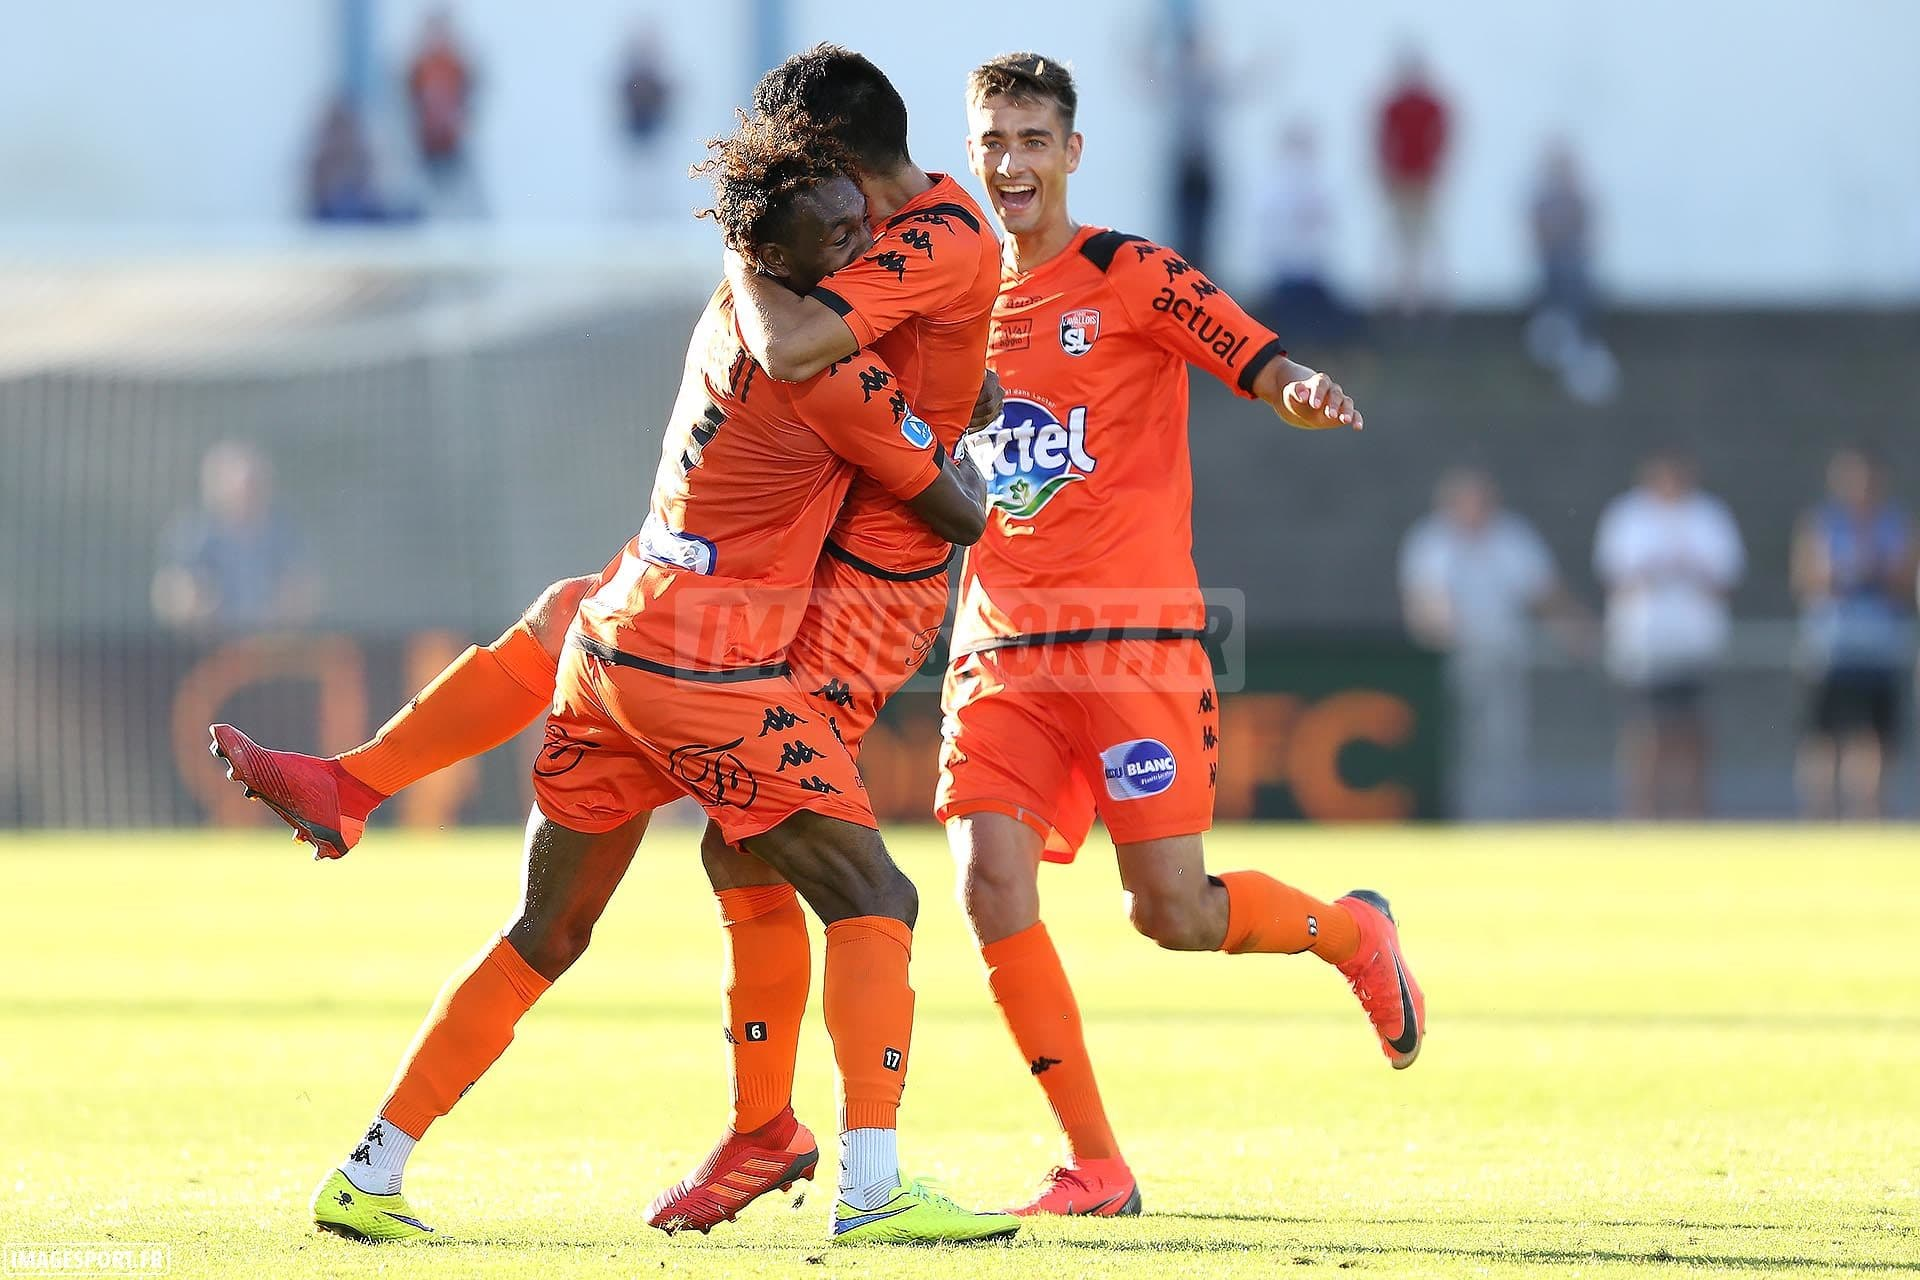 national-stade-lavallois-quevilly-rouen-2019-2020-jcd_24